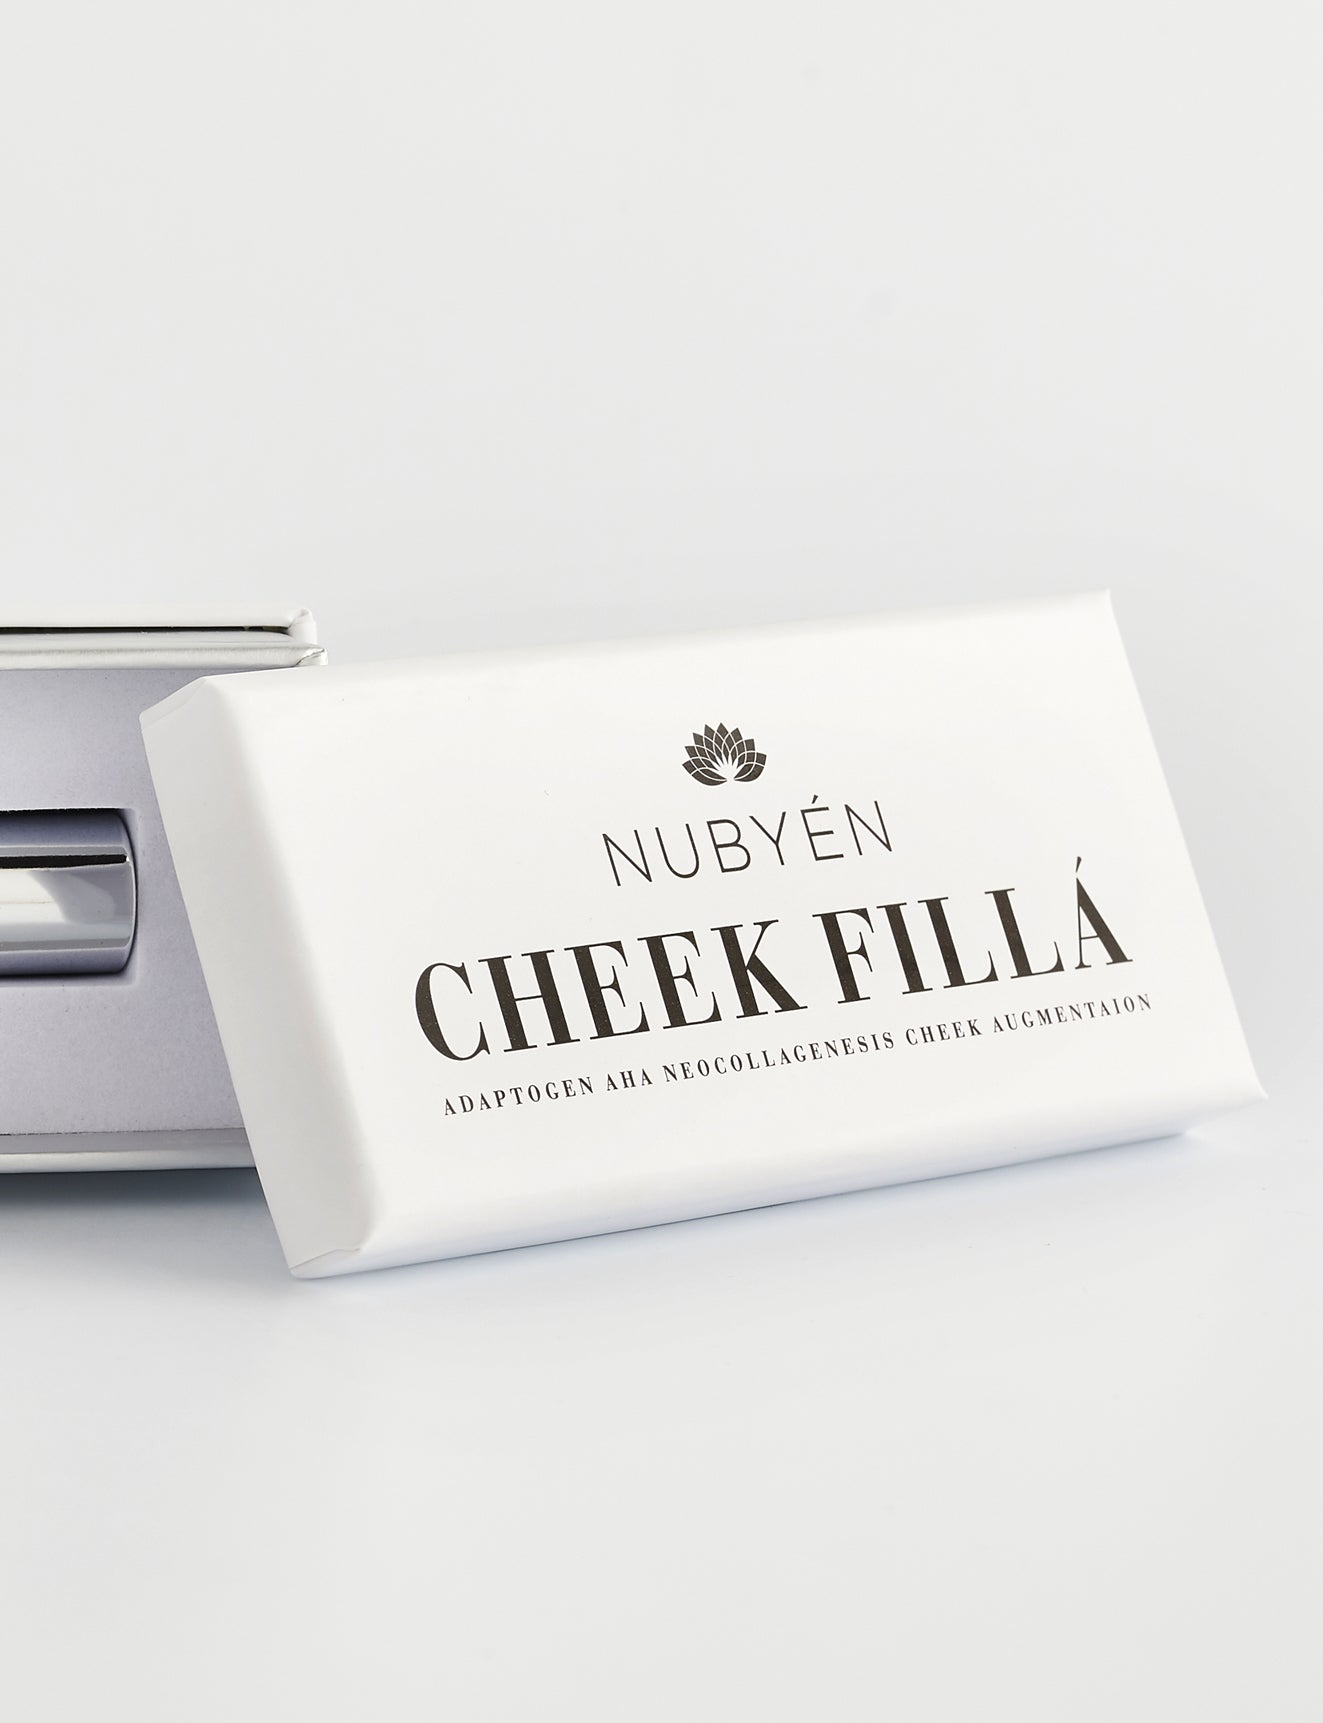 Nubyen cheek filler, hyaluronic acid, collagen, Lip plumping gloss Nubyen Nude, best lip plumper, nubyen cheek filler , cheek filler alternative, nubyen lip plumper, lip plumping gloss, best lip plumper, Nubyen Nude,  fuller lips instantly, collagen hyaluronic acid, best lip plumping lipgloss, best lip plumper, lip filler, full lips, lip injections, plump it, Charlotte tilbury collagen lip plumper, too faced lip injection, dior addict lip maximiser, code lip intense plumper, buxum lip plumper,